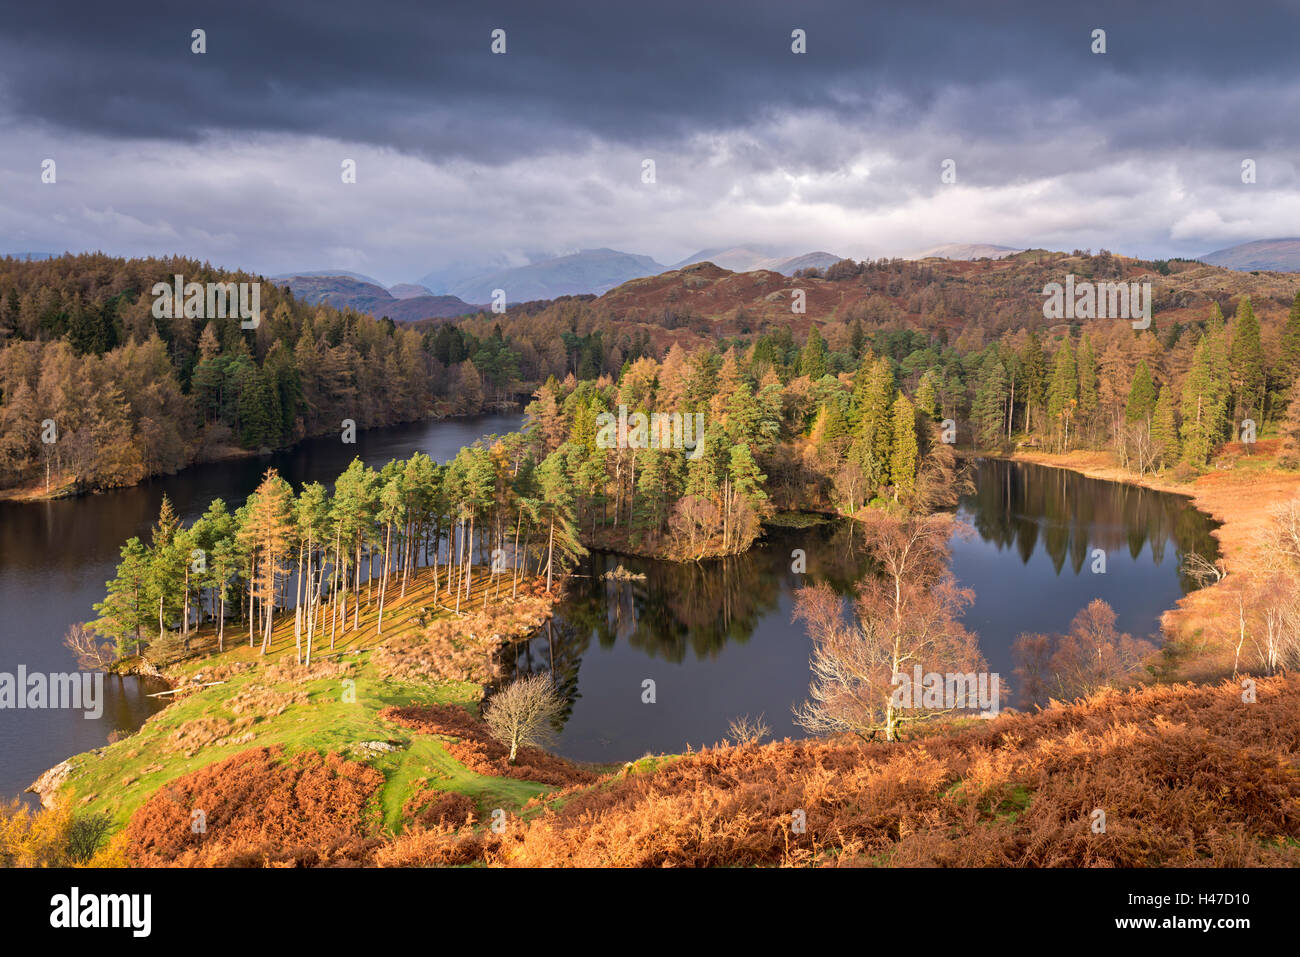 Picturesque Tarn Hows in the Lake District, Cumbria, England. Autumn (November) 2014. - Stock Image